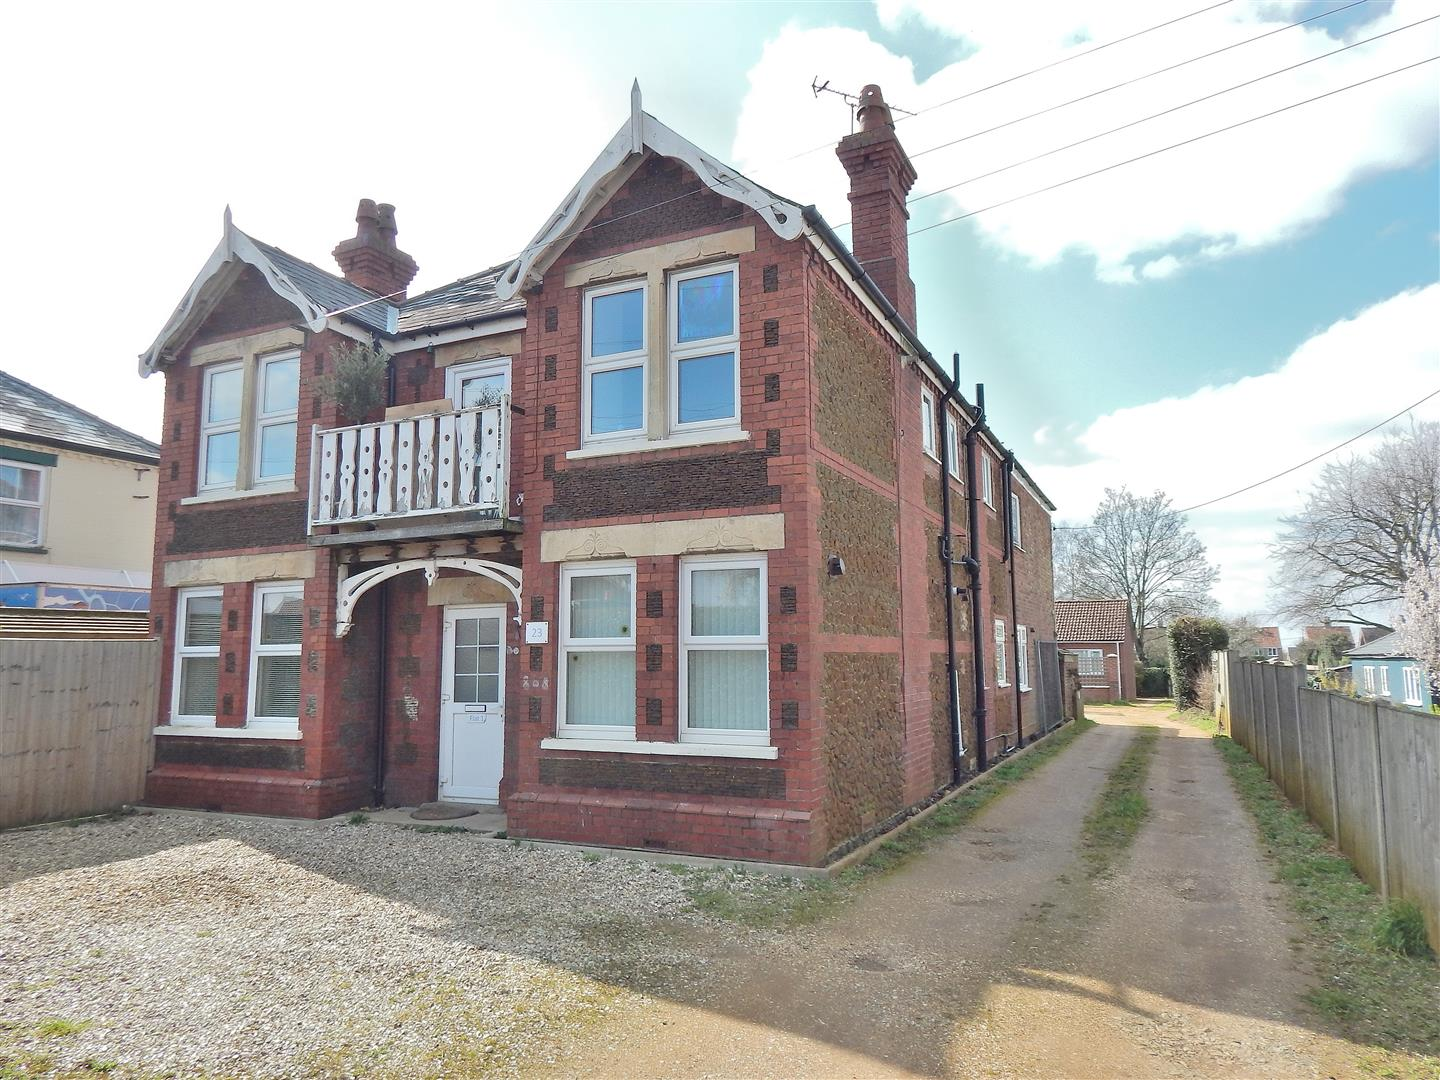 2 bed flat for sale in King's Lynn, PE31 6NA, PE31